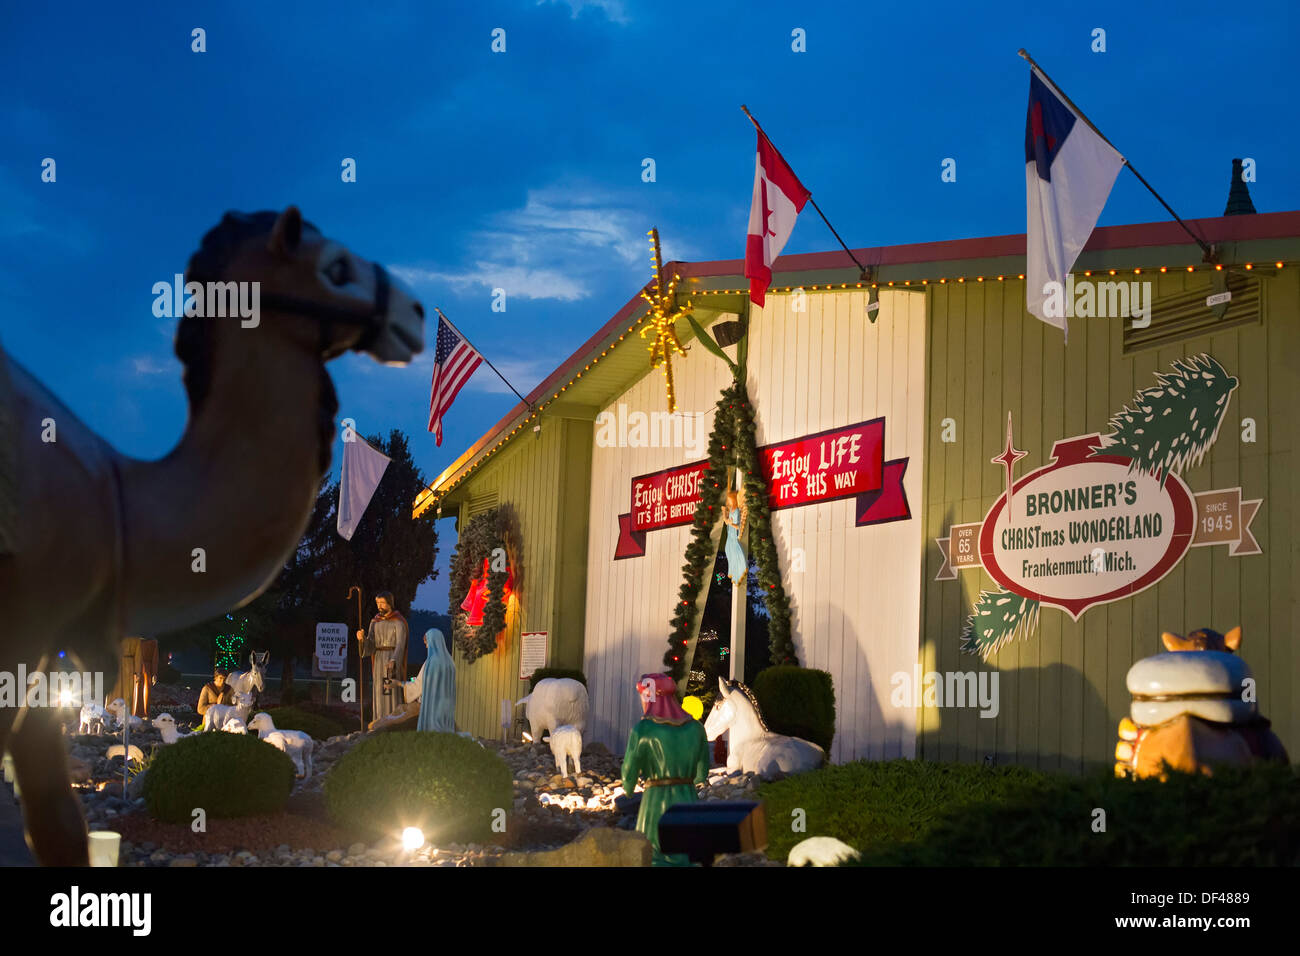 frankenmuth michigan bronners christmas wonderland the worlds largest christmas store stock - Worlds Largest Christmas Store